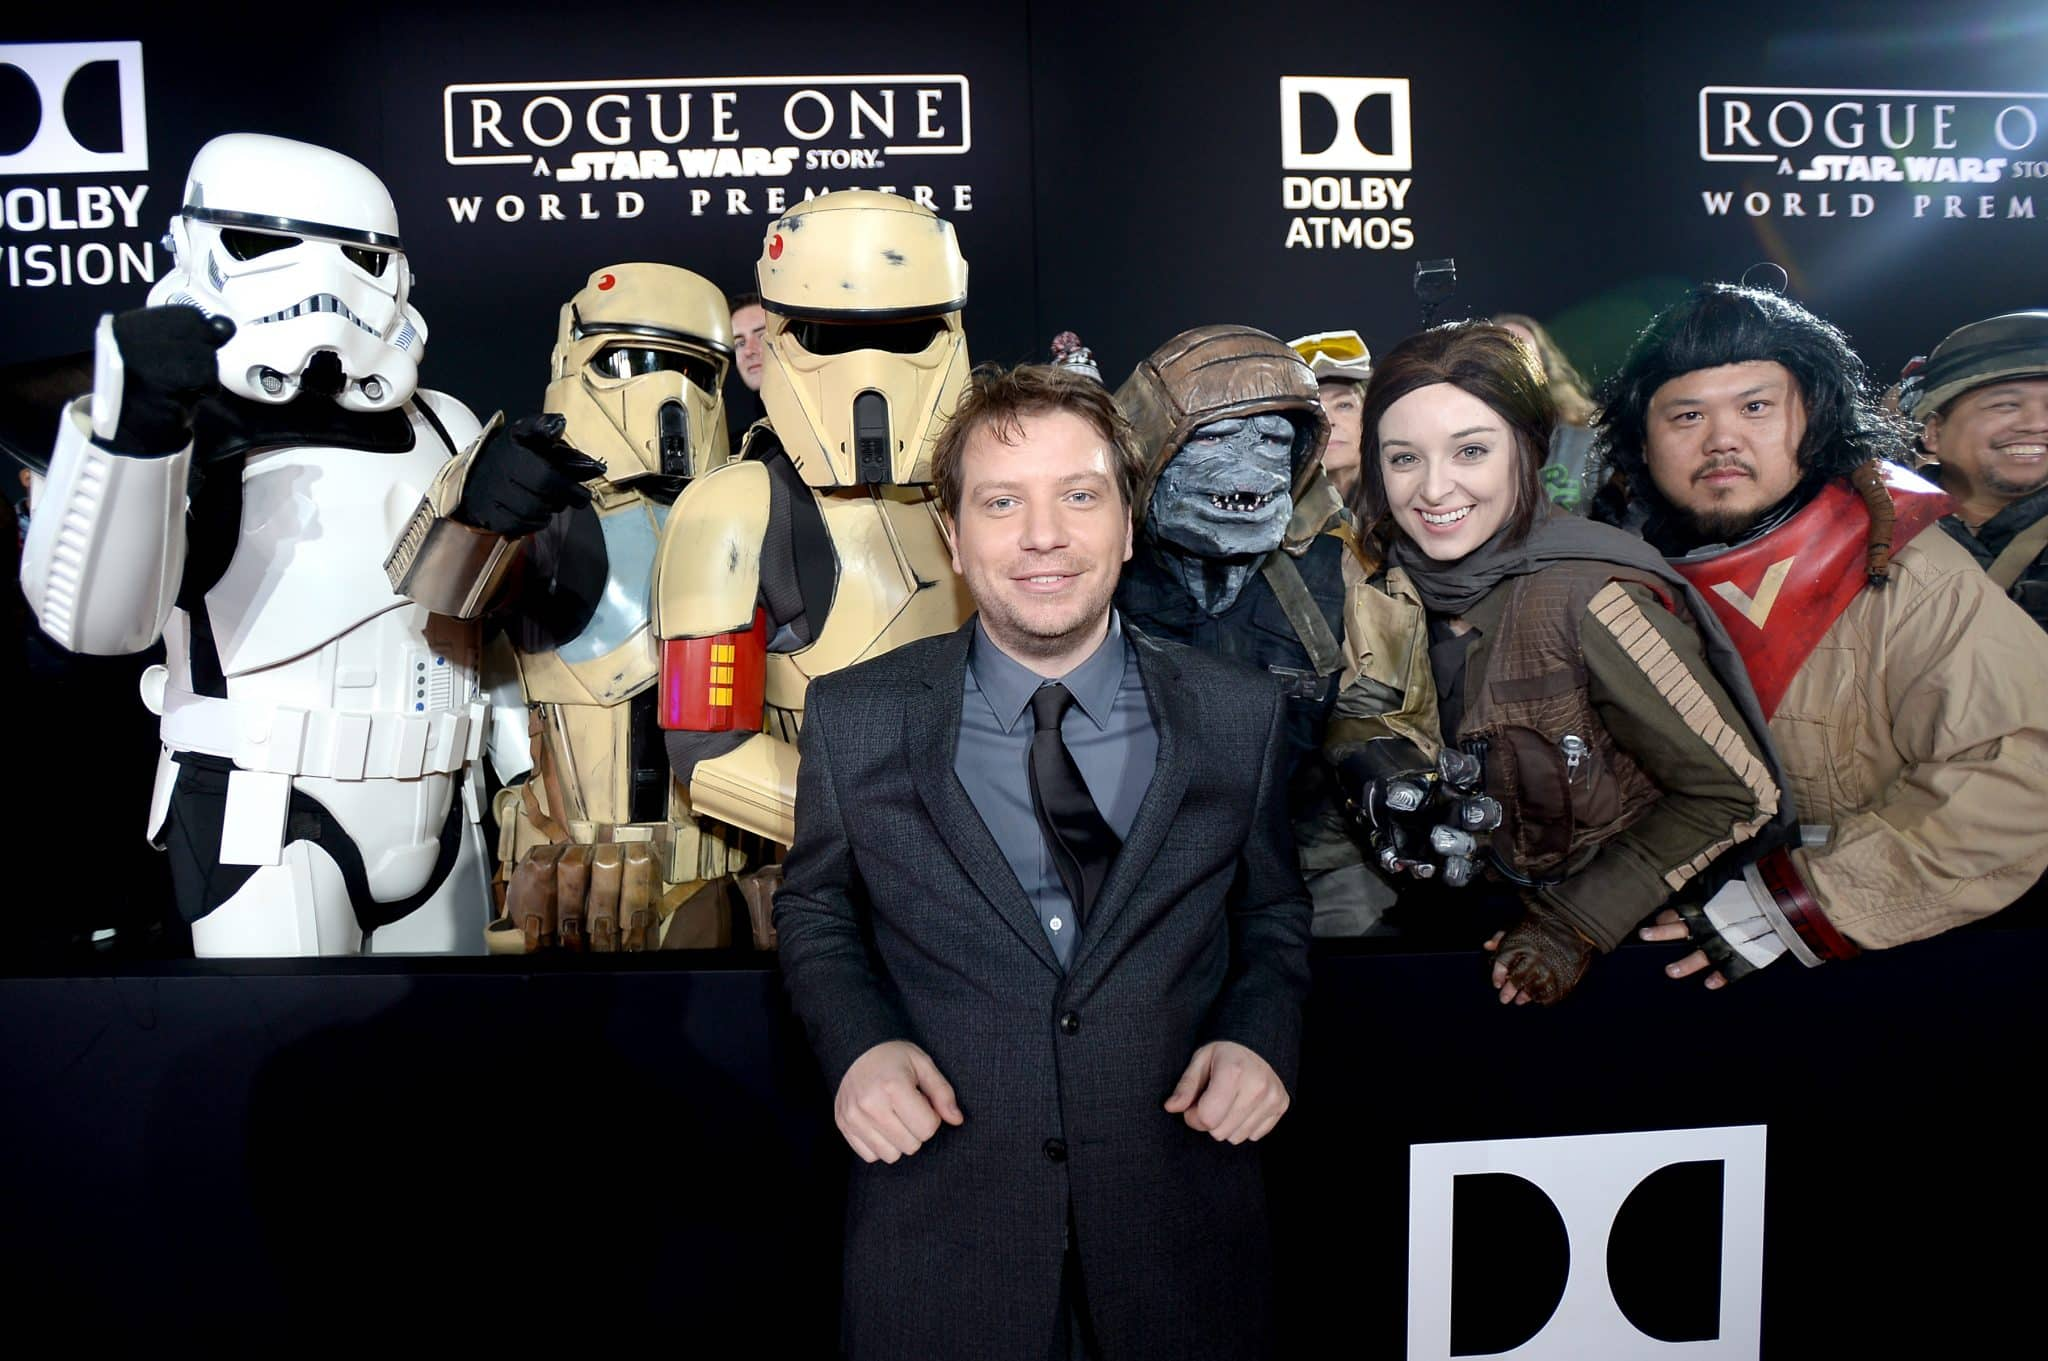 "HOLLYWOOD, CA - DECEMBER 10: Actor Gareth Edwards (C) poses with costumed fans at The World Premiere of Lucasfilm's highly anticipated, first-ever, standalone Star Wars adventure, ""Rogue One: A Star Wars Story"" at the Pantages Theatre on December 10, 2016 in Hollywood, California. (Photo by Charley Gallay/Getty Images for Disney) *** Local Caption *** Gareth Edwards"